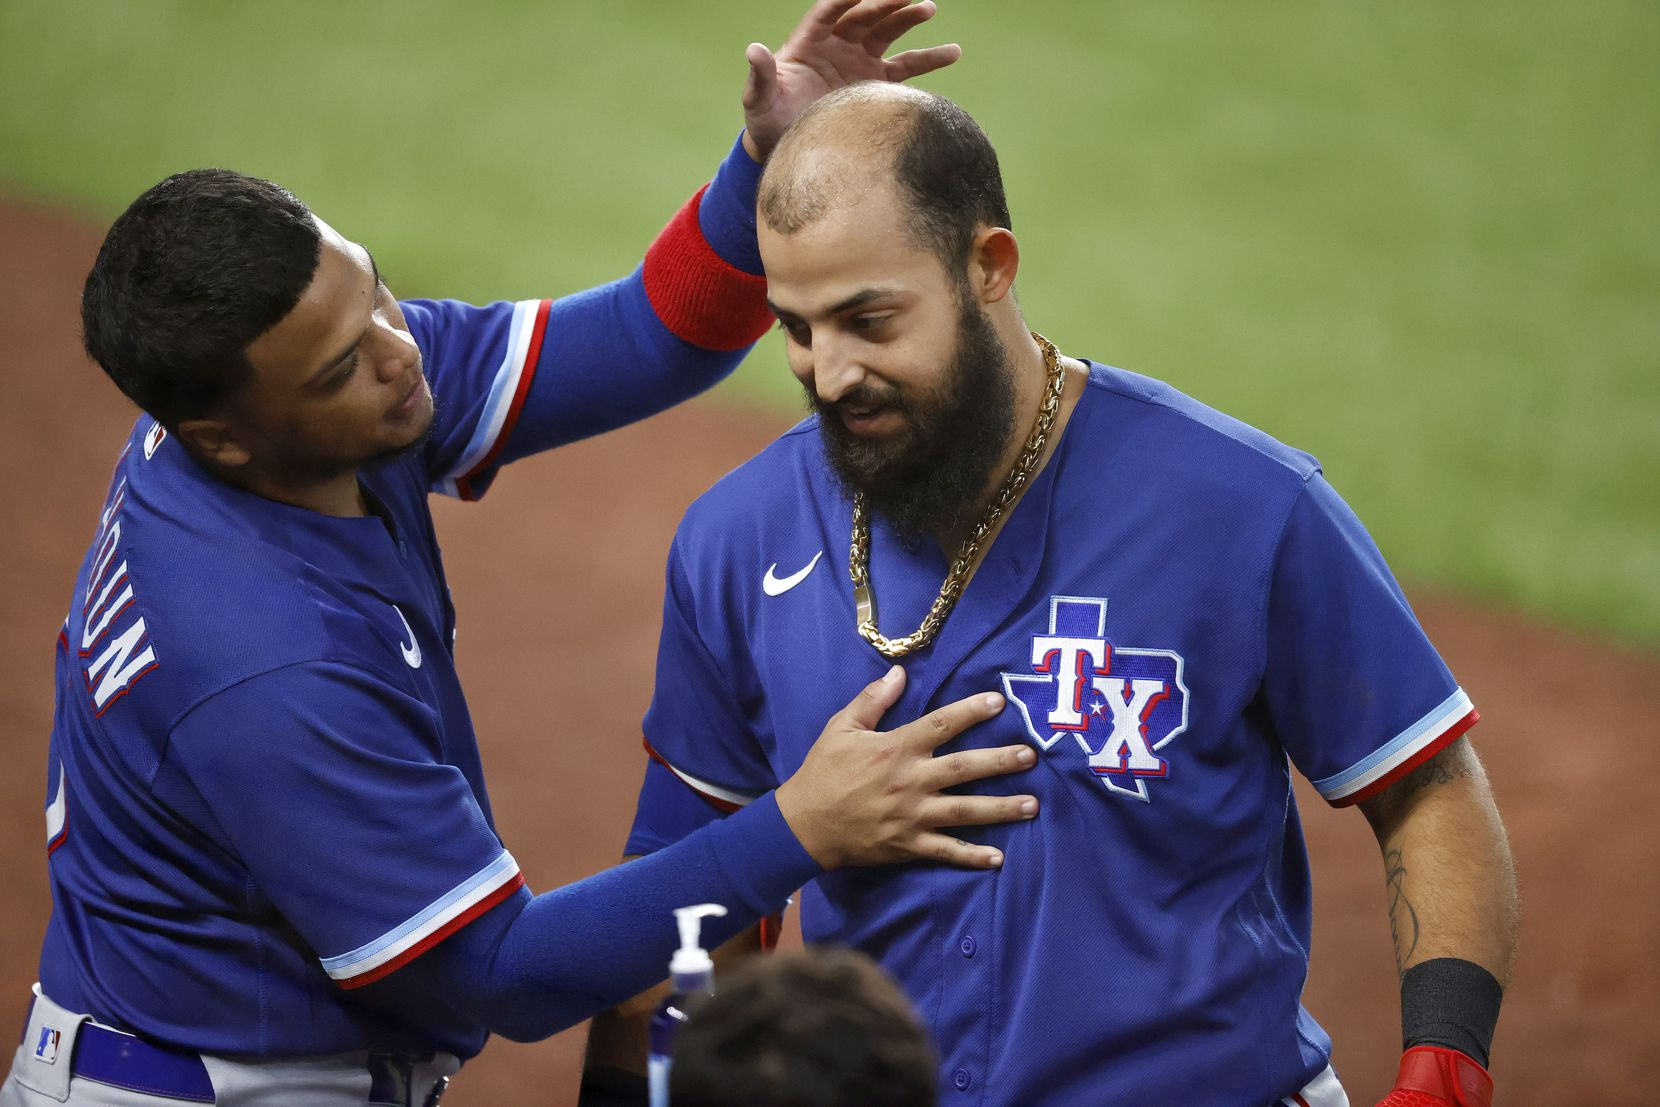 Texas Rangers Rougned Odor (right) is congratulated on his home run by teammate Willie Calhoun during an intrasquad game at Summer Camp inside Globe Life Field in Arlington, Texas, Friday, July 10, 2020. (Tom Fox/The Dallas Morning News)